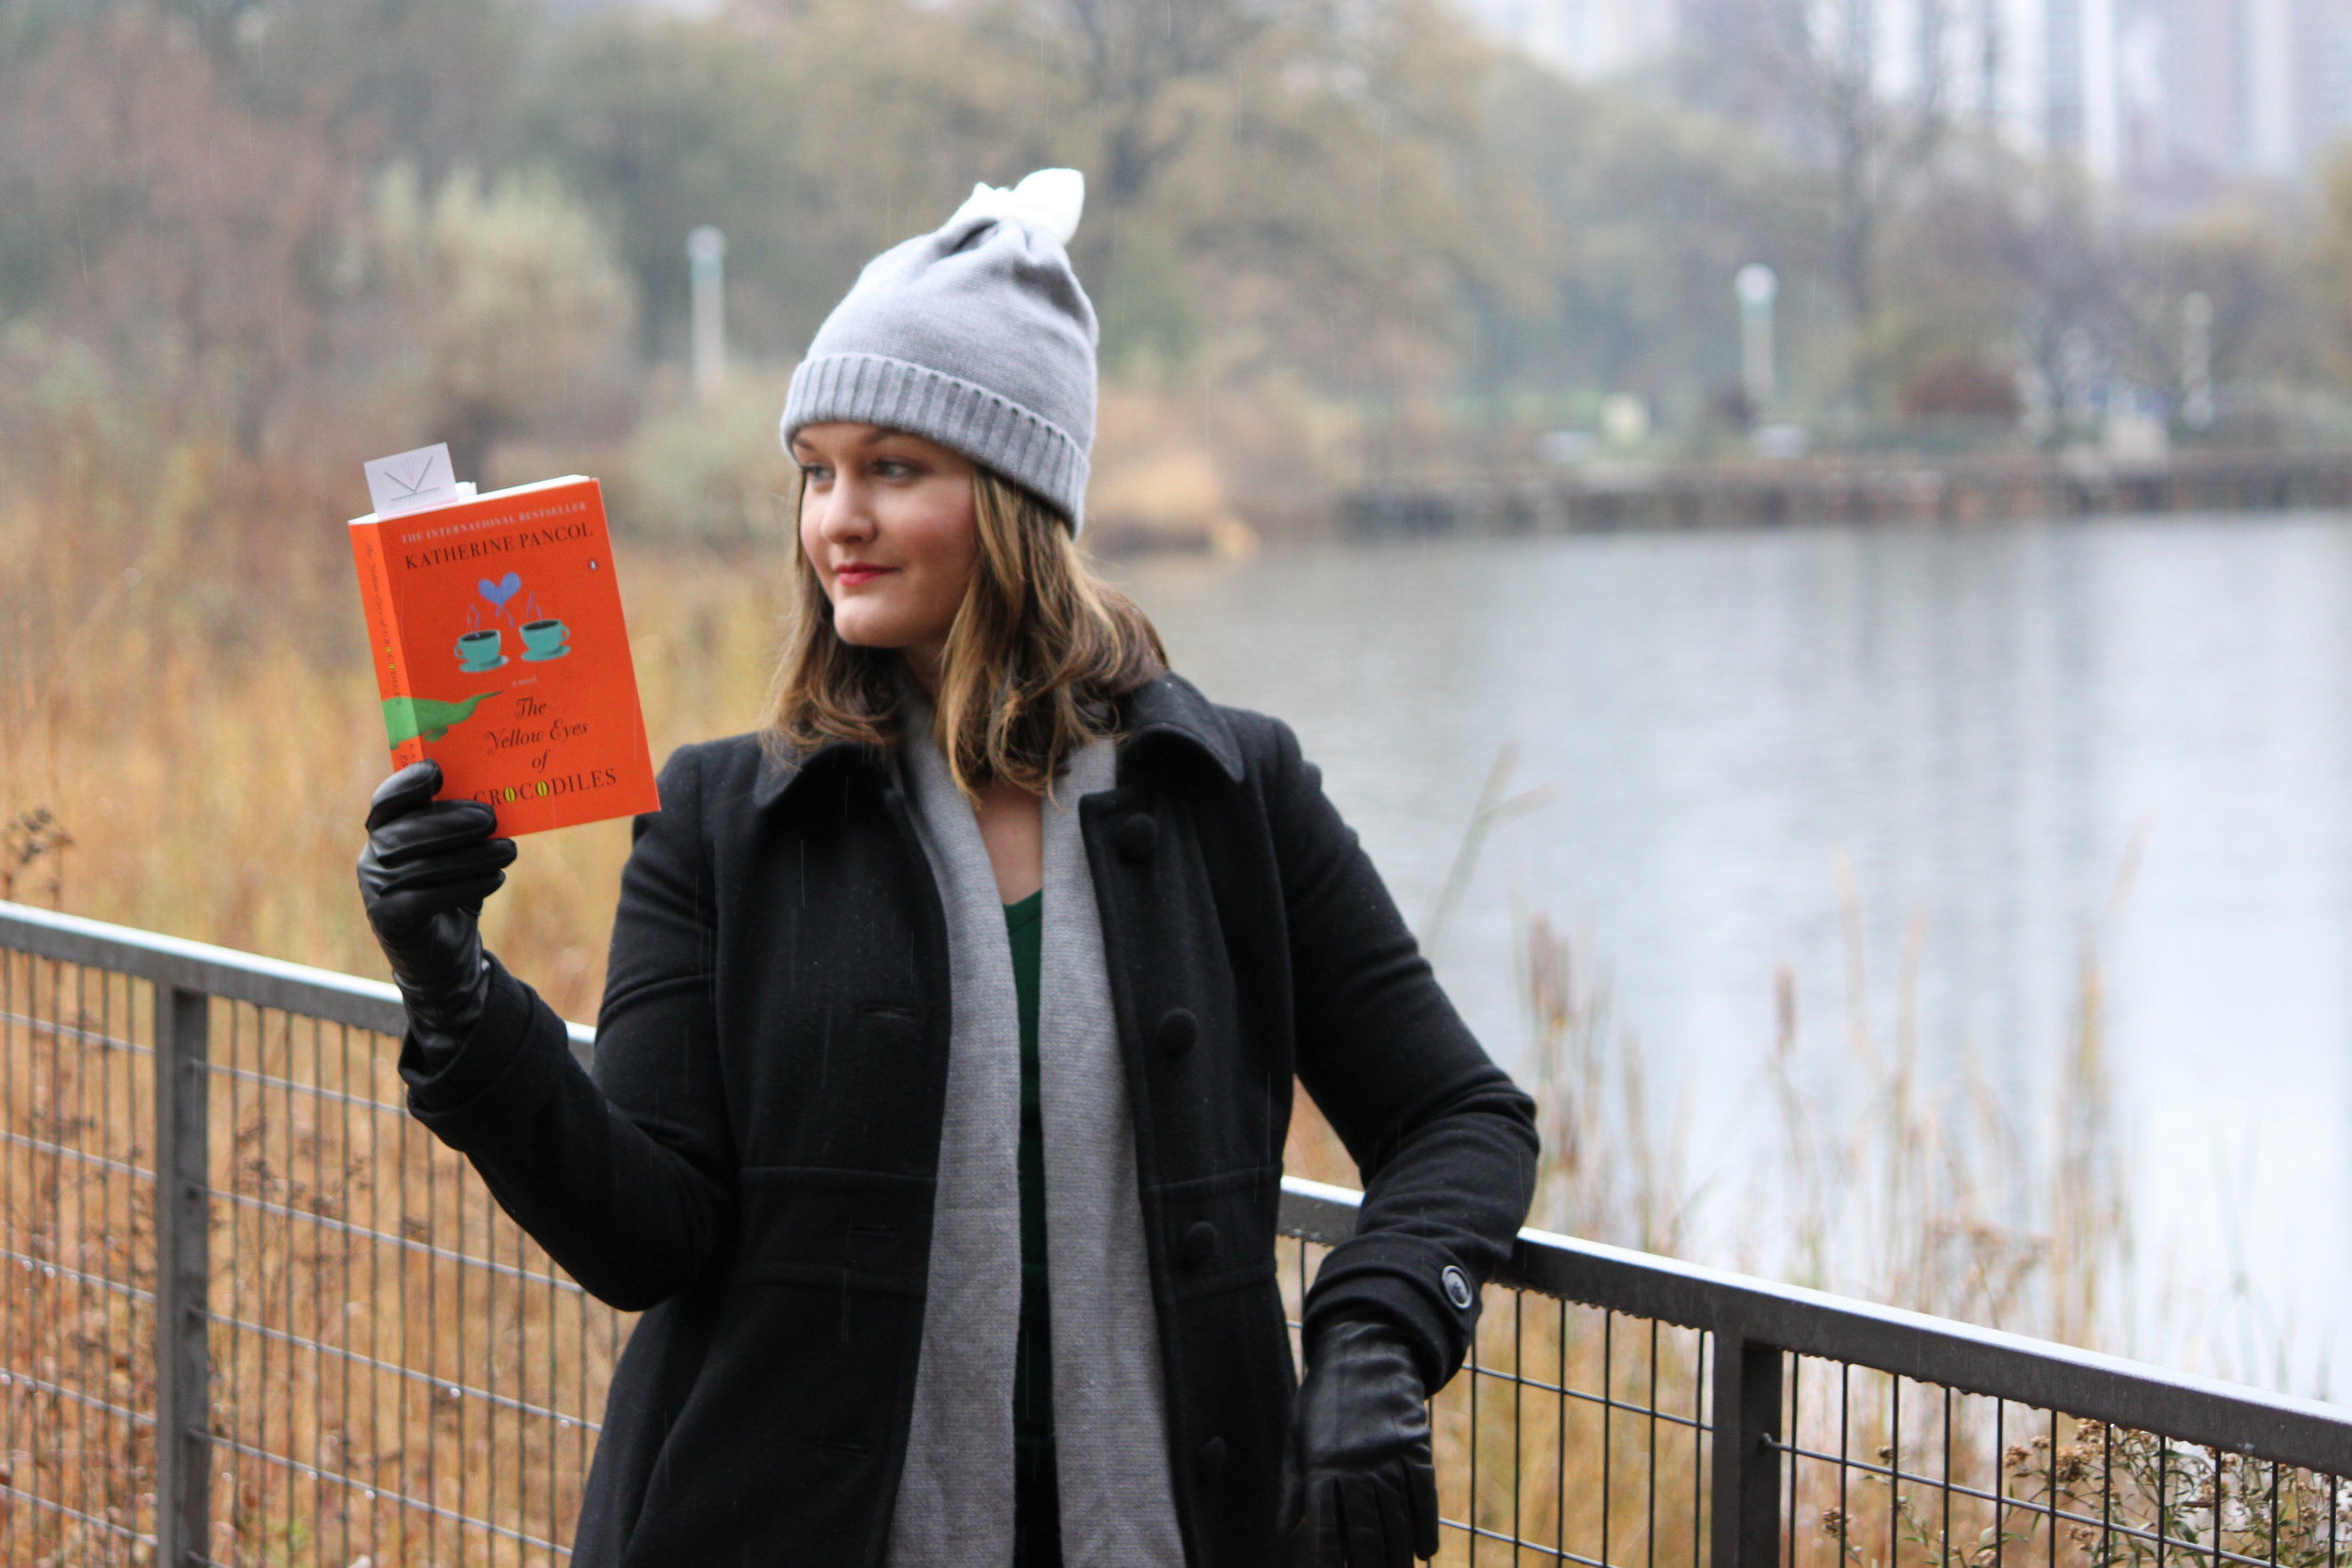 Reading The Yellow Eyes of Crocodiles by Katherine Pancol at Lincoln Park in Chicago